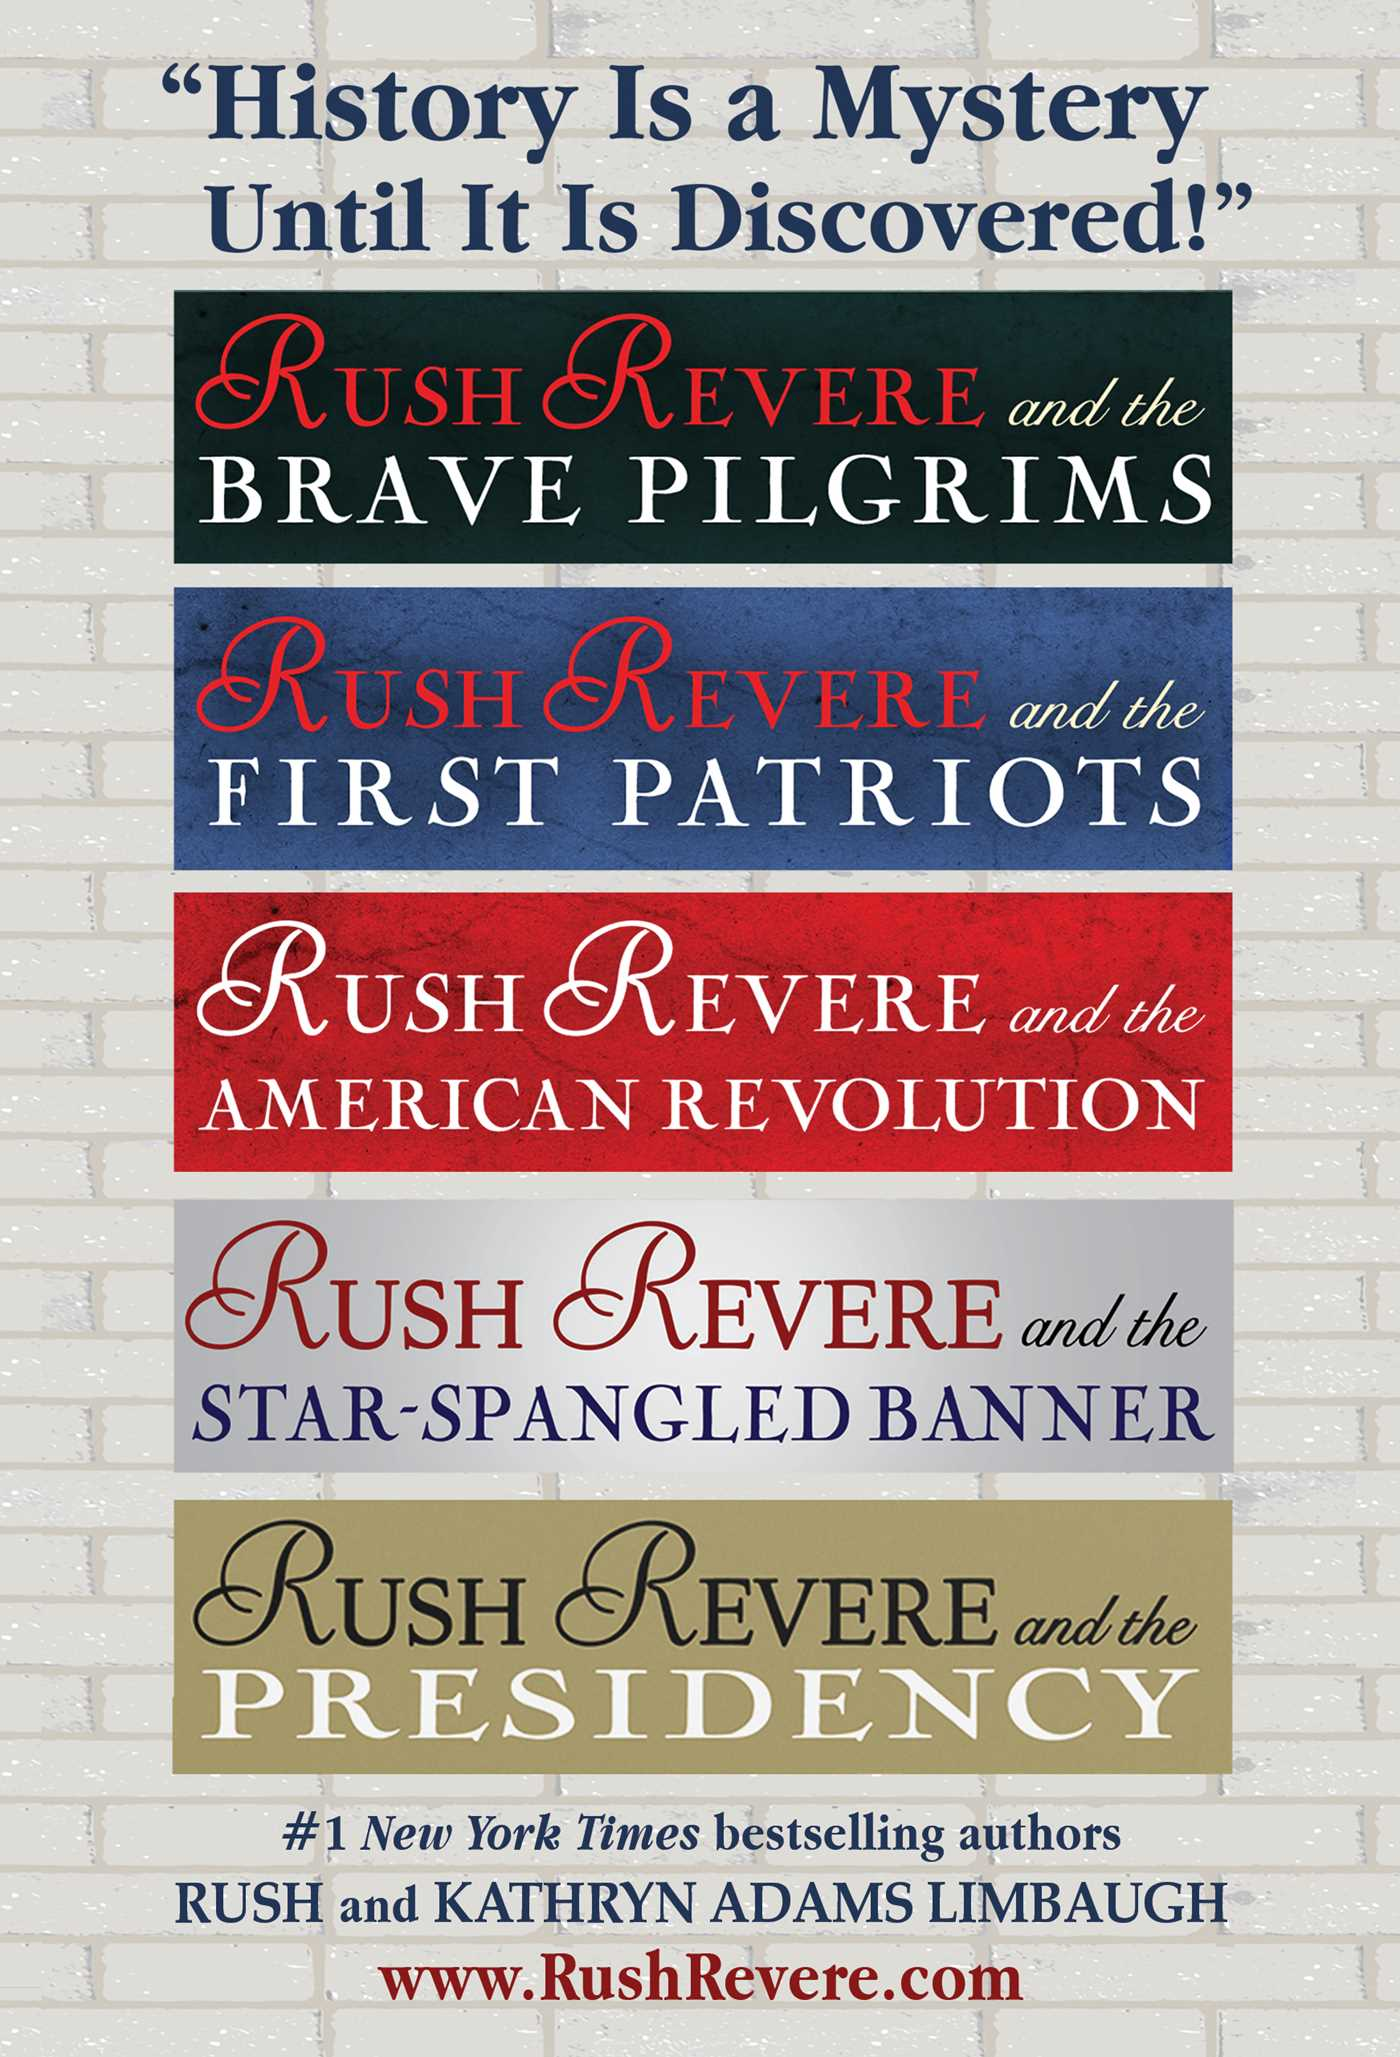 The incredible adventures of rush revere 9781501179990 hr back